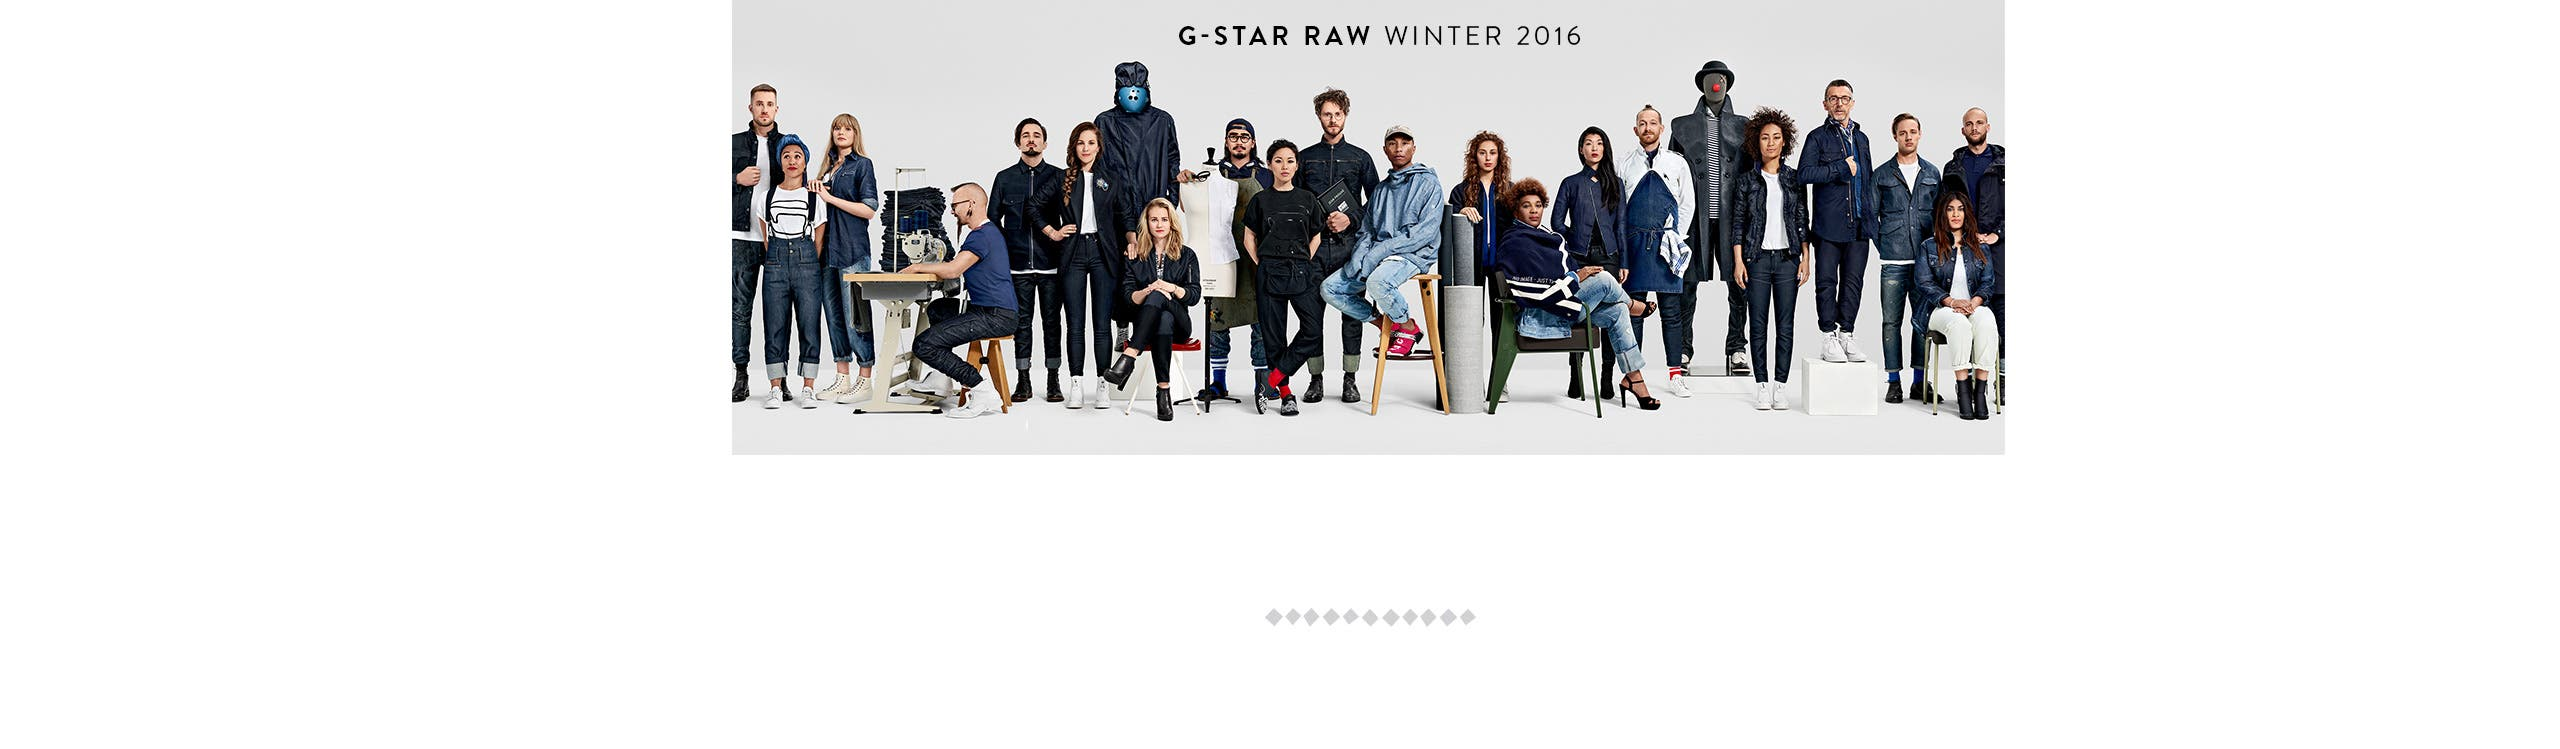 G-Star Raw, winter 2016.